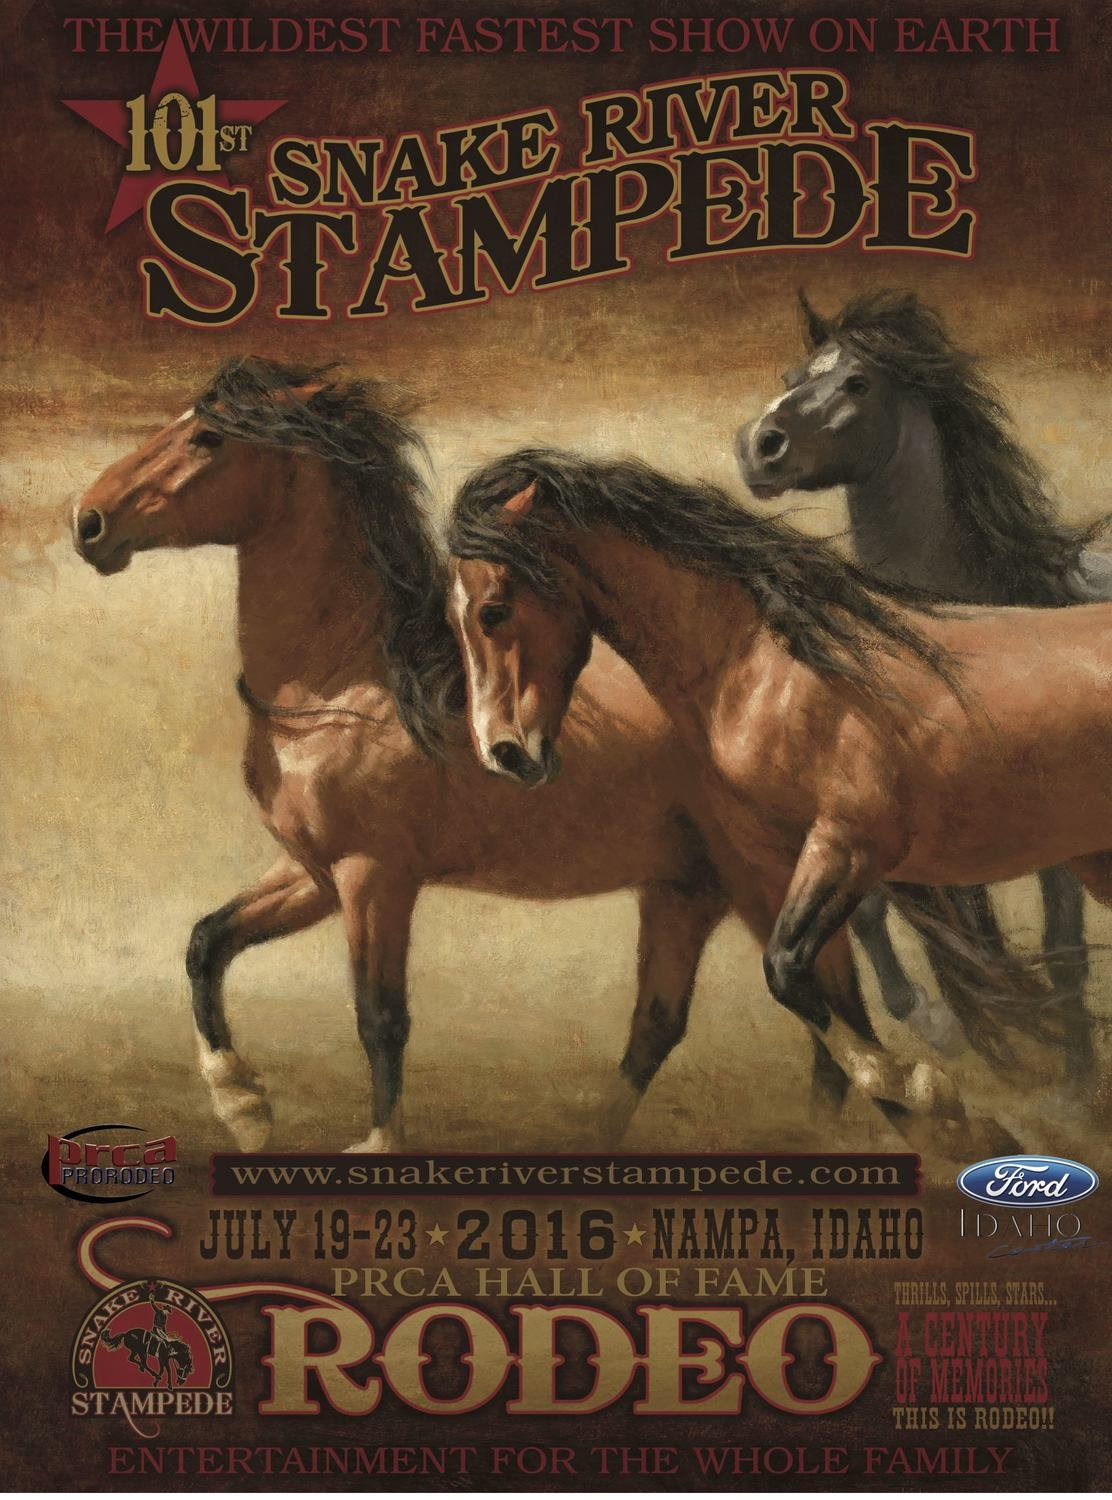 2016 OFFICIAL RODEO POSTER